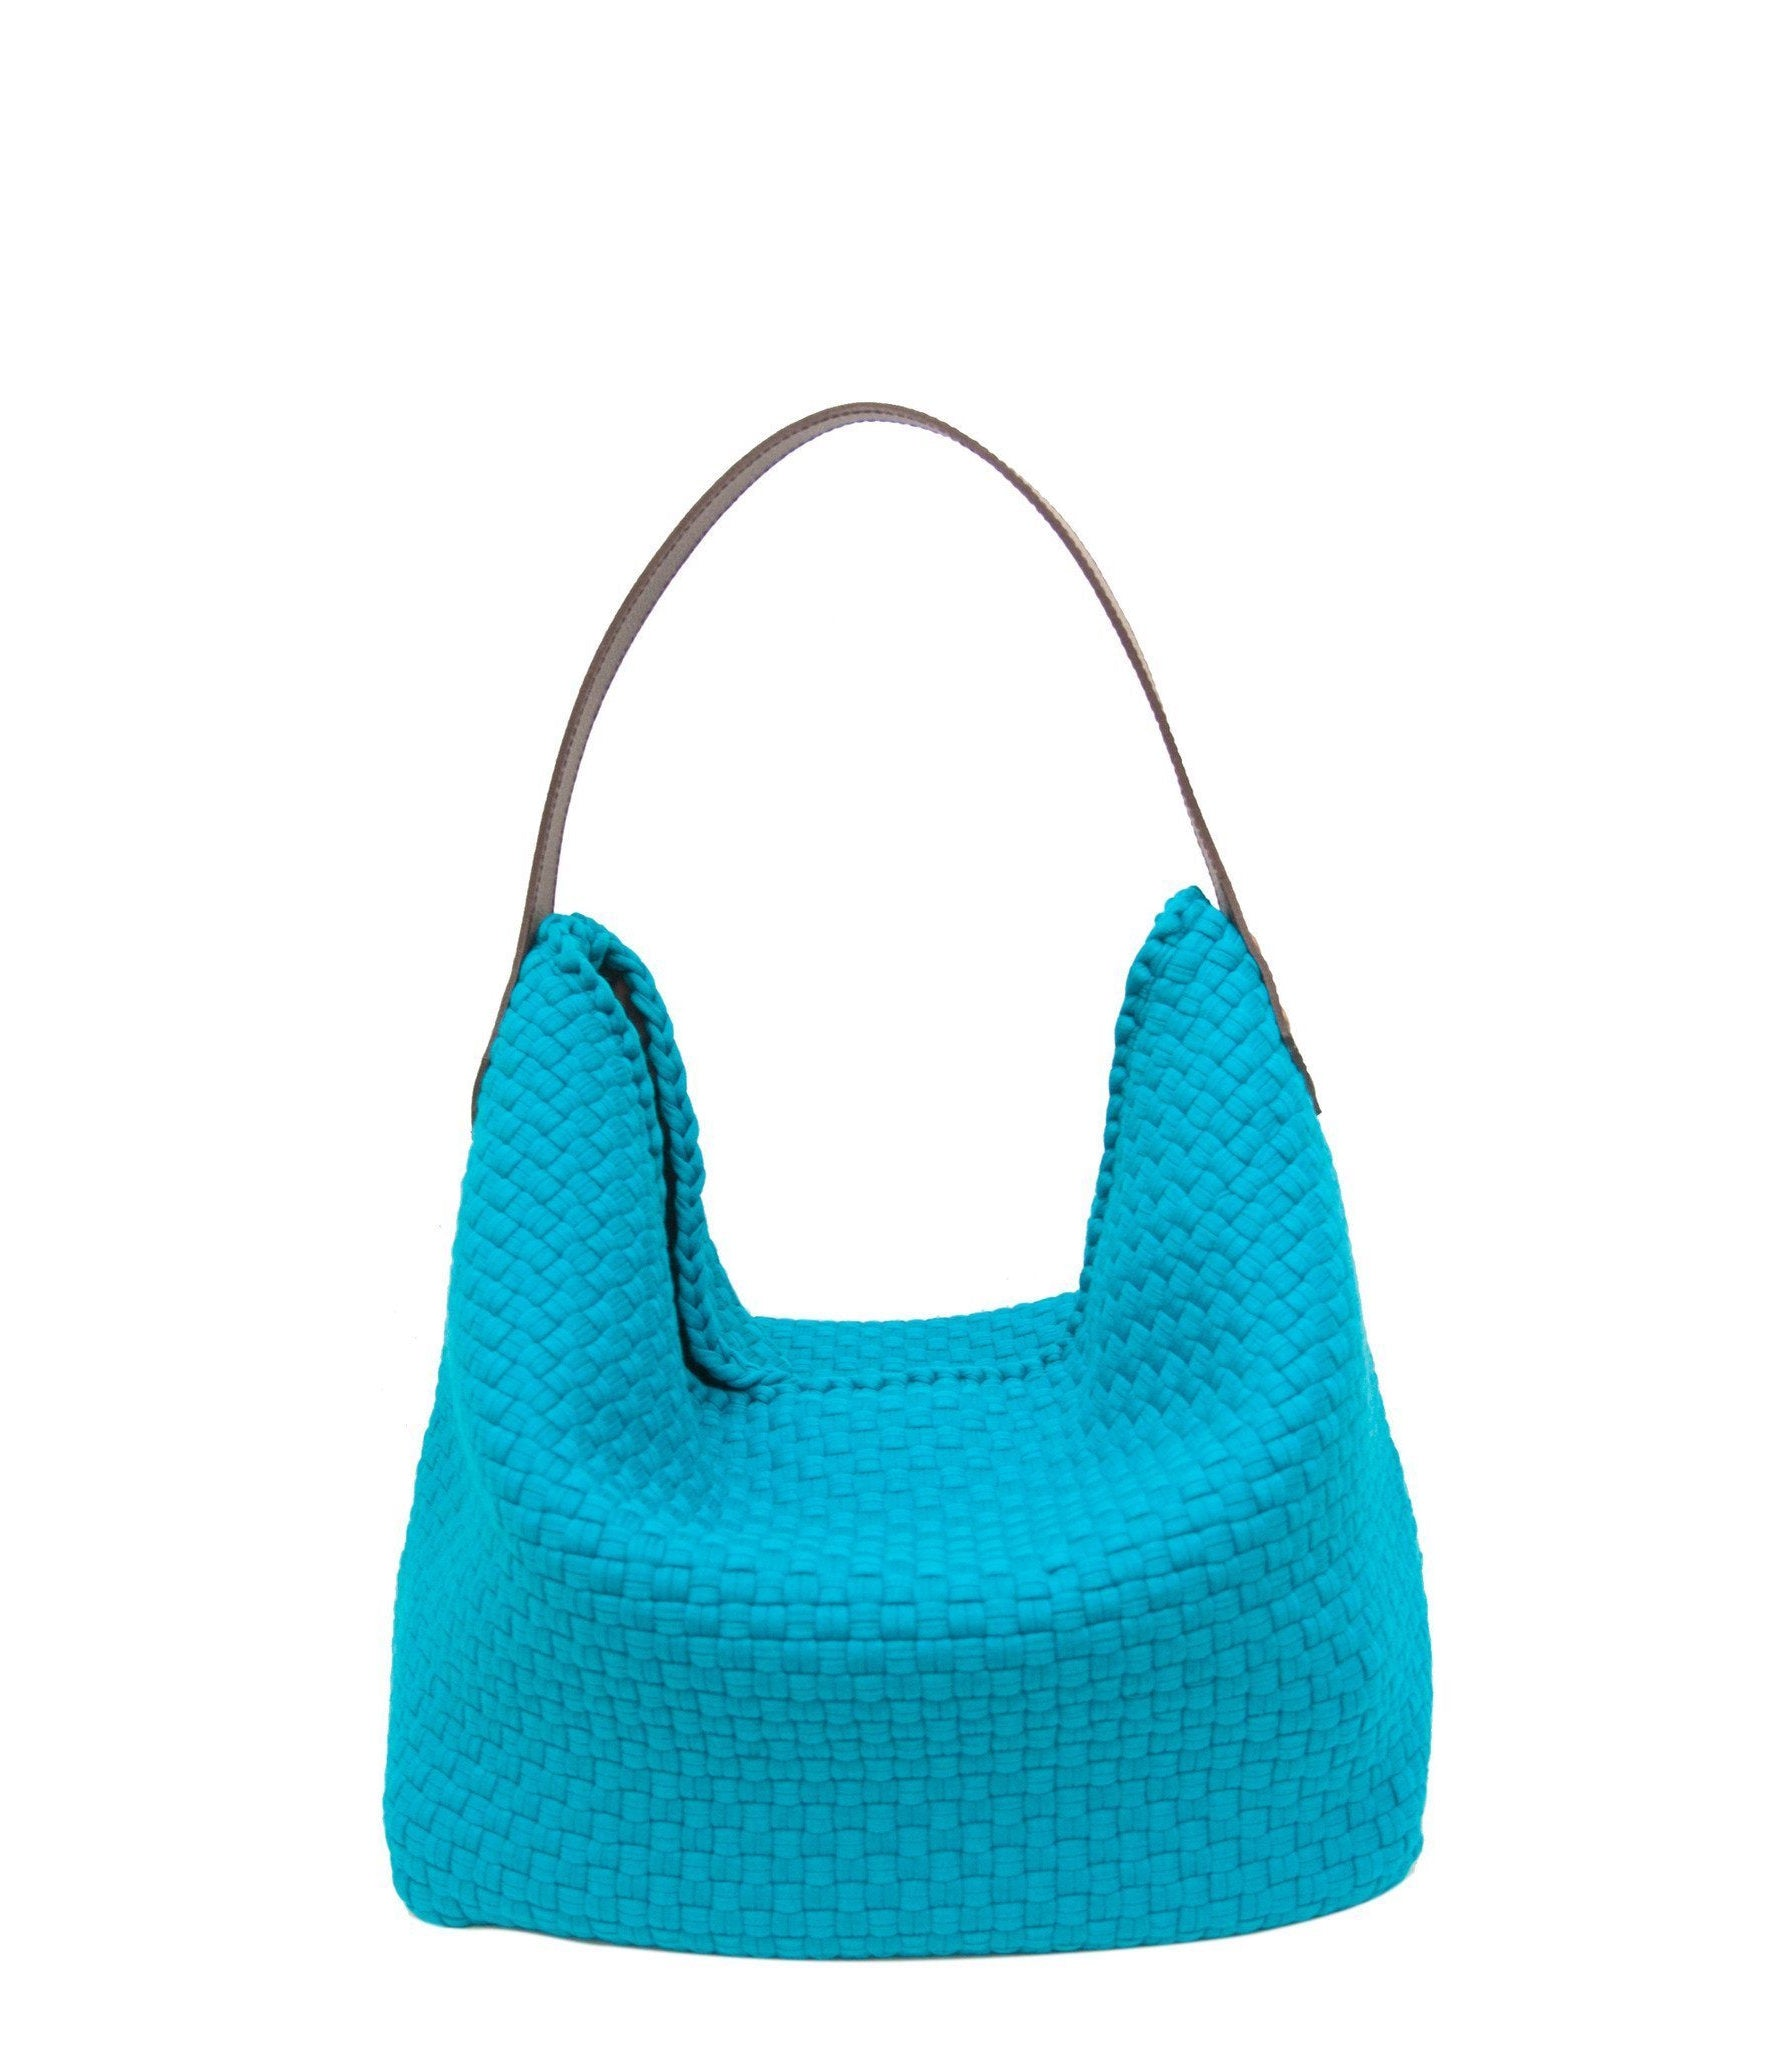 Buslo Hobo Bag in Turquoise - Rags2Riches